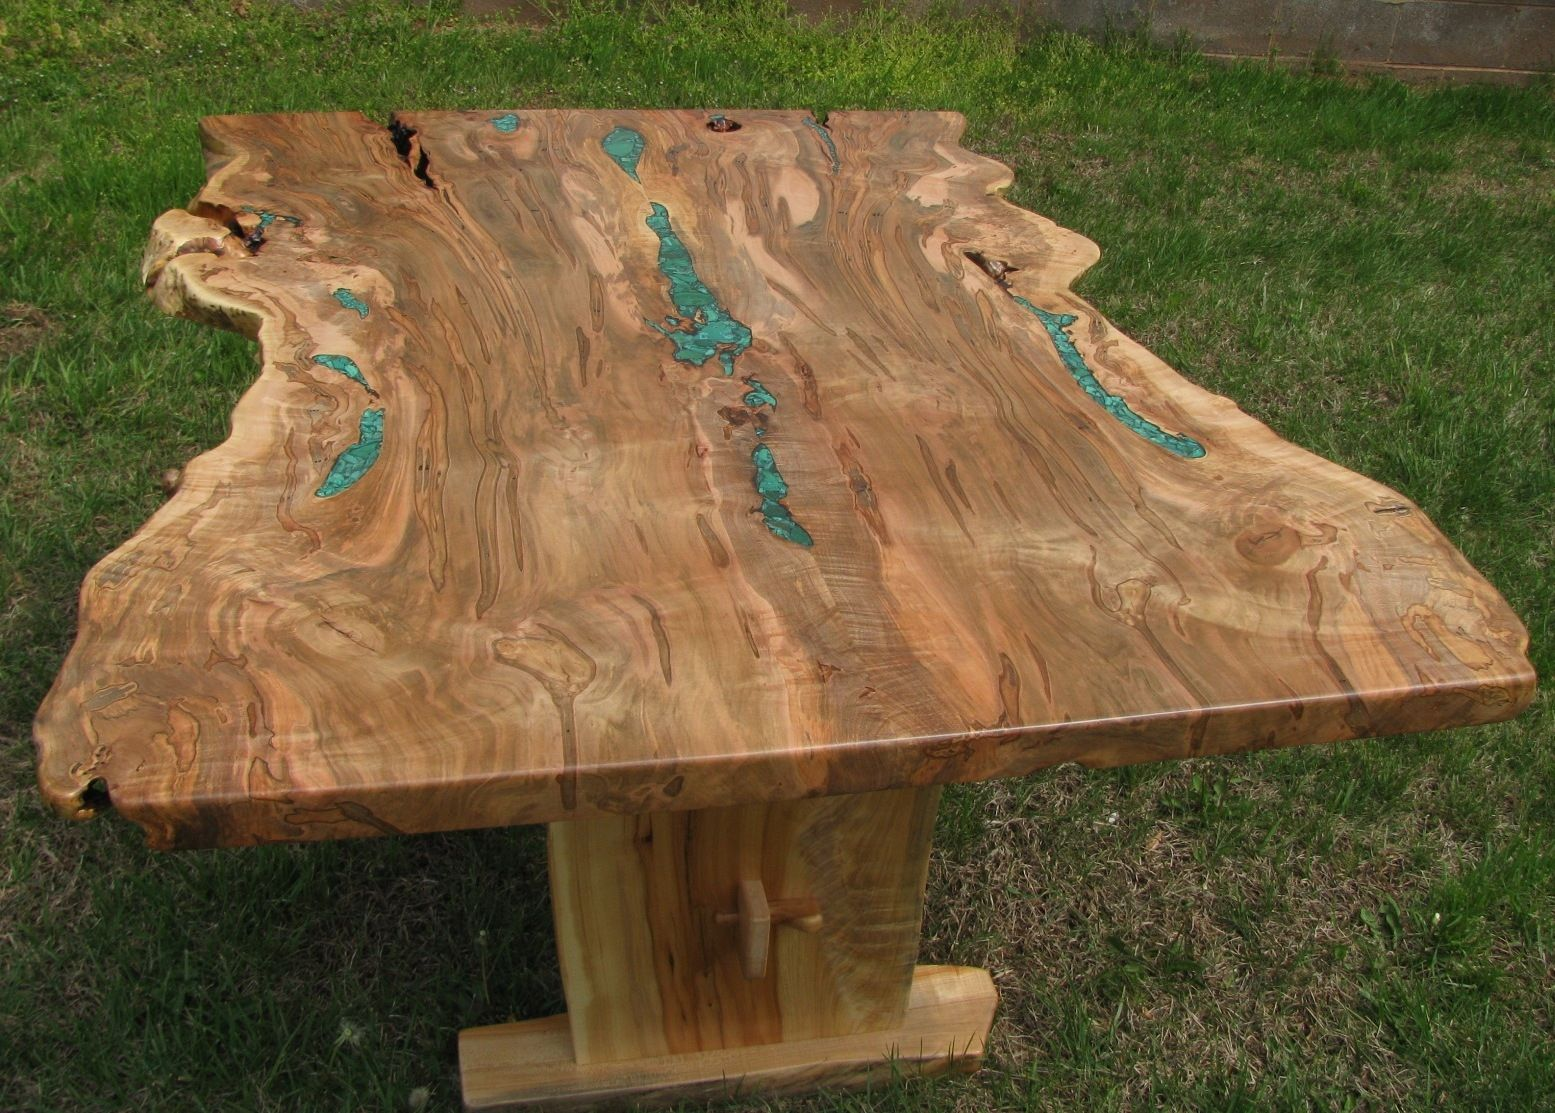 Hand Crafted Live Edge Ambrosia Maple Dining Trestle Table